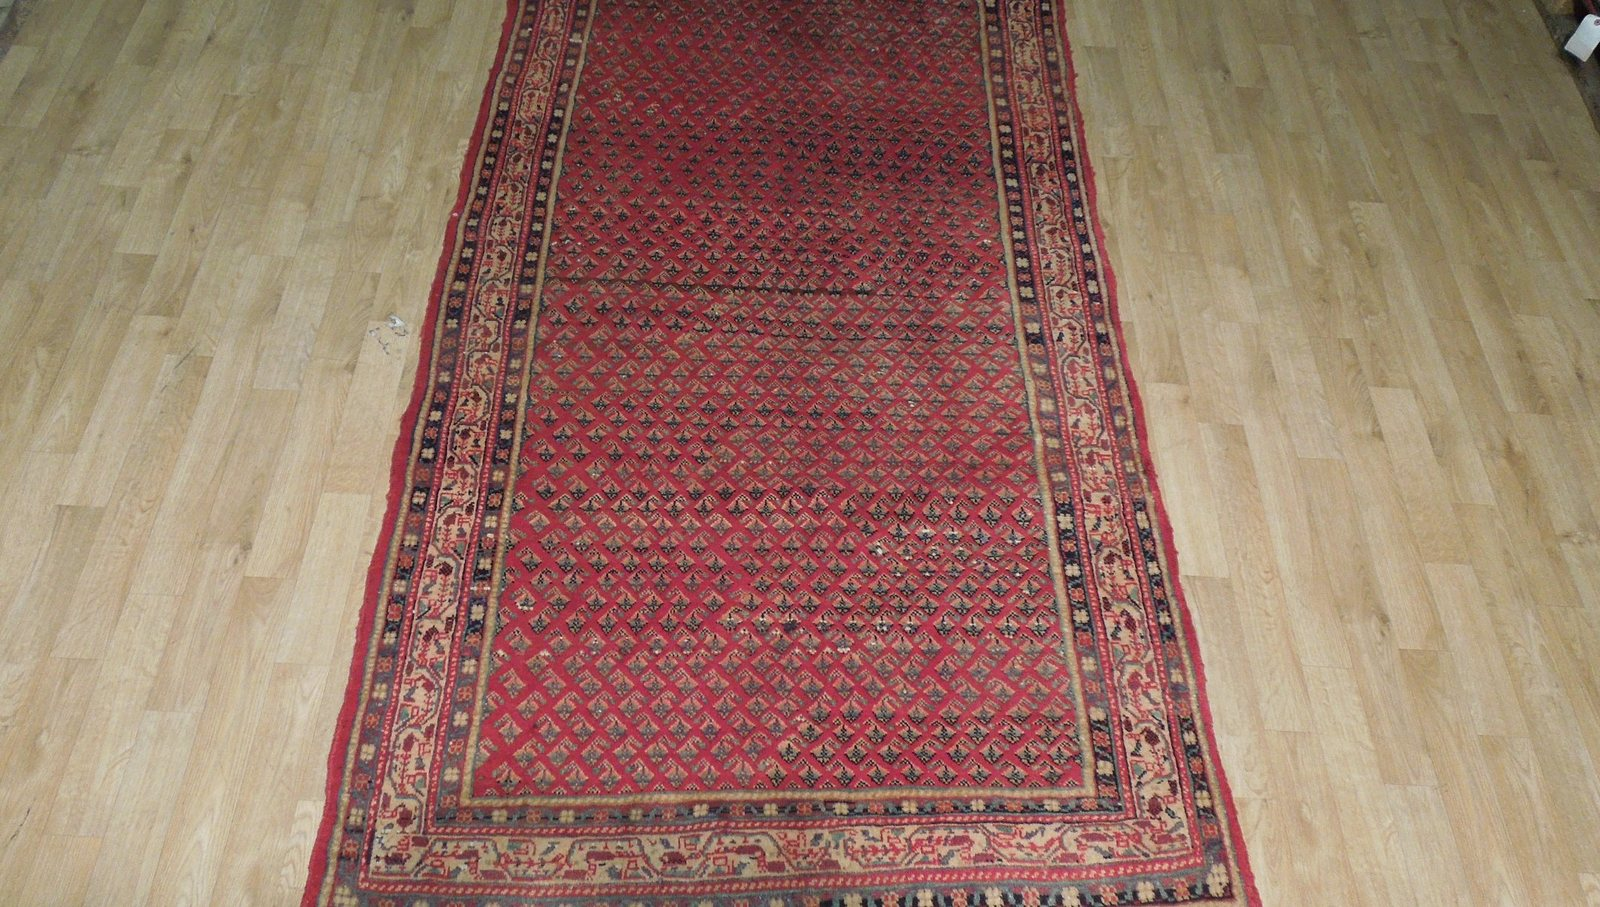 Mir Persian Wool Hand-Knotted Rug 4 x 9 Estate All-Over Flames Design Red Rug image 9